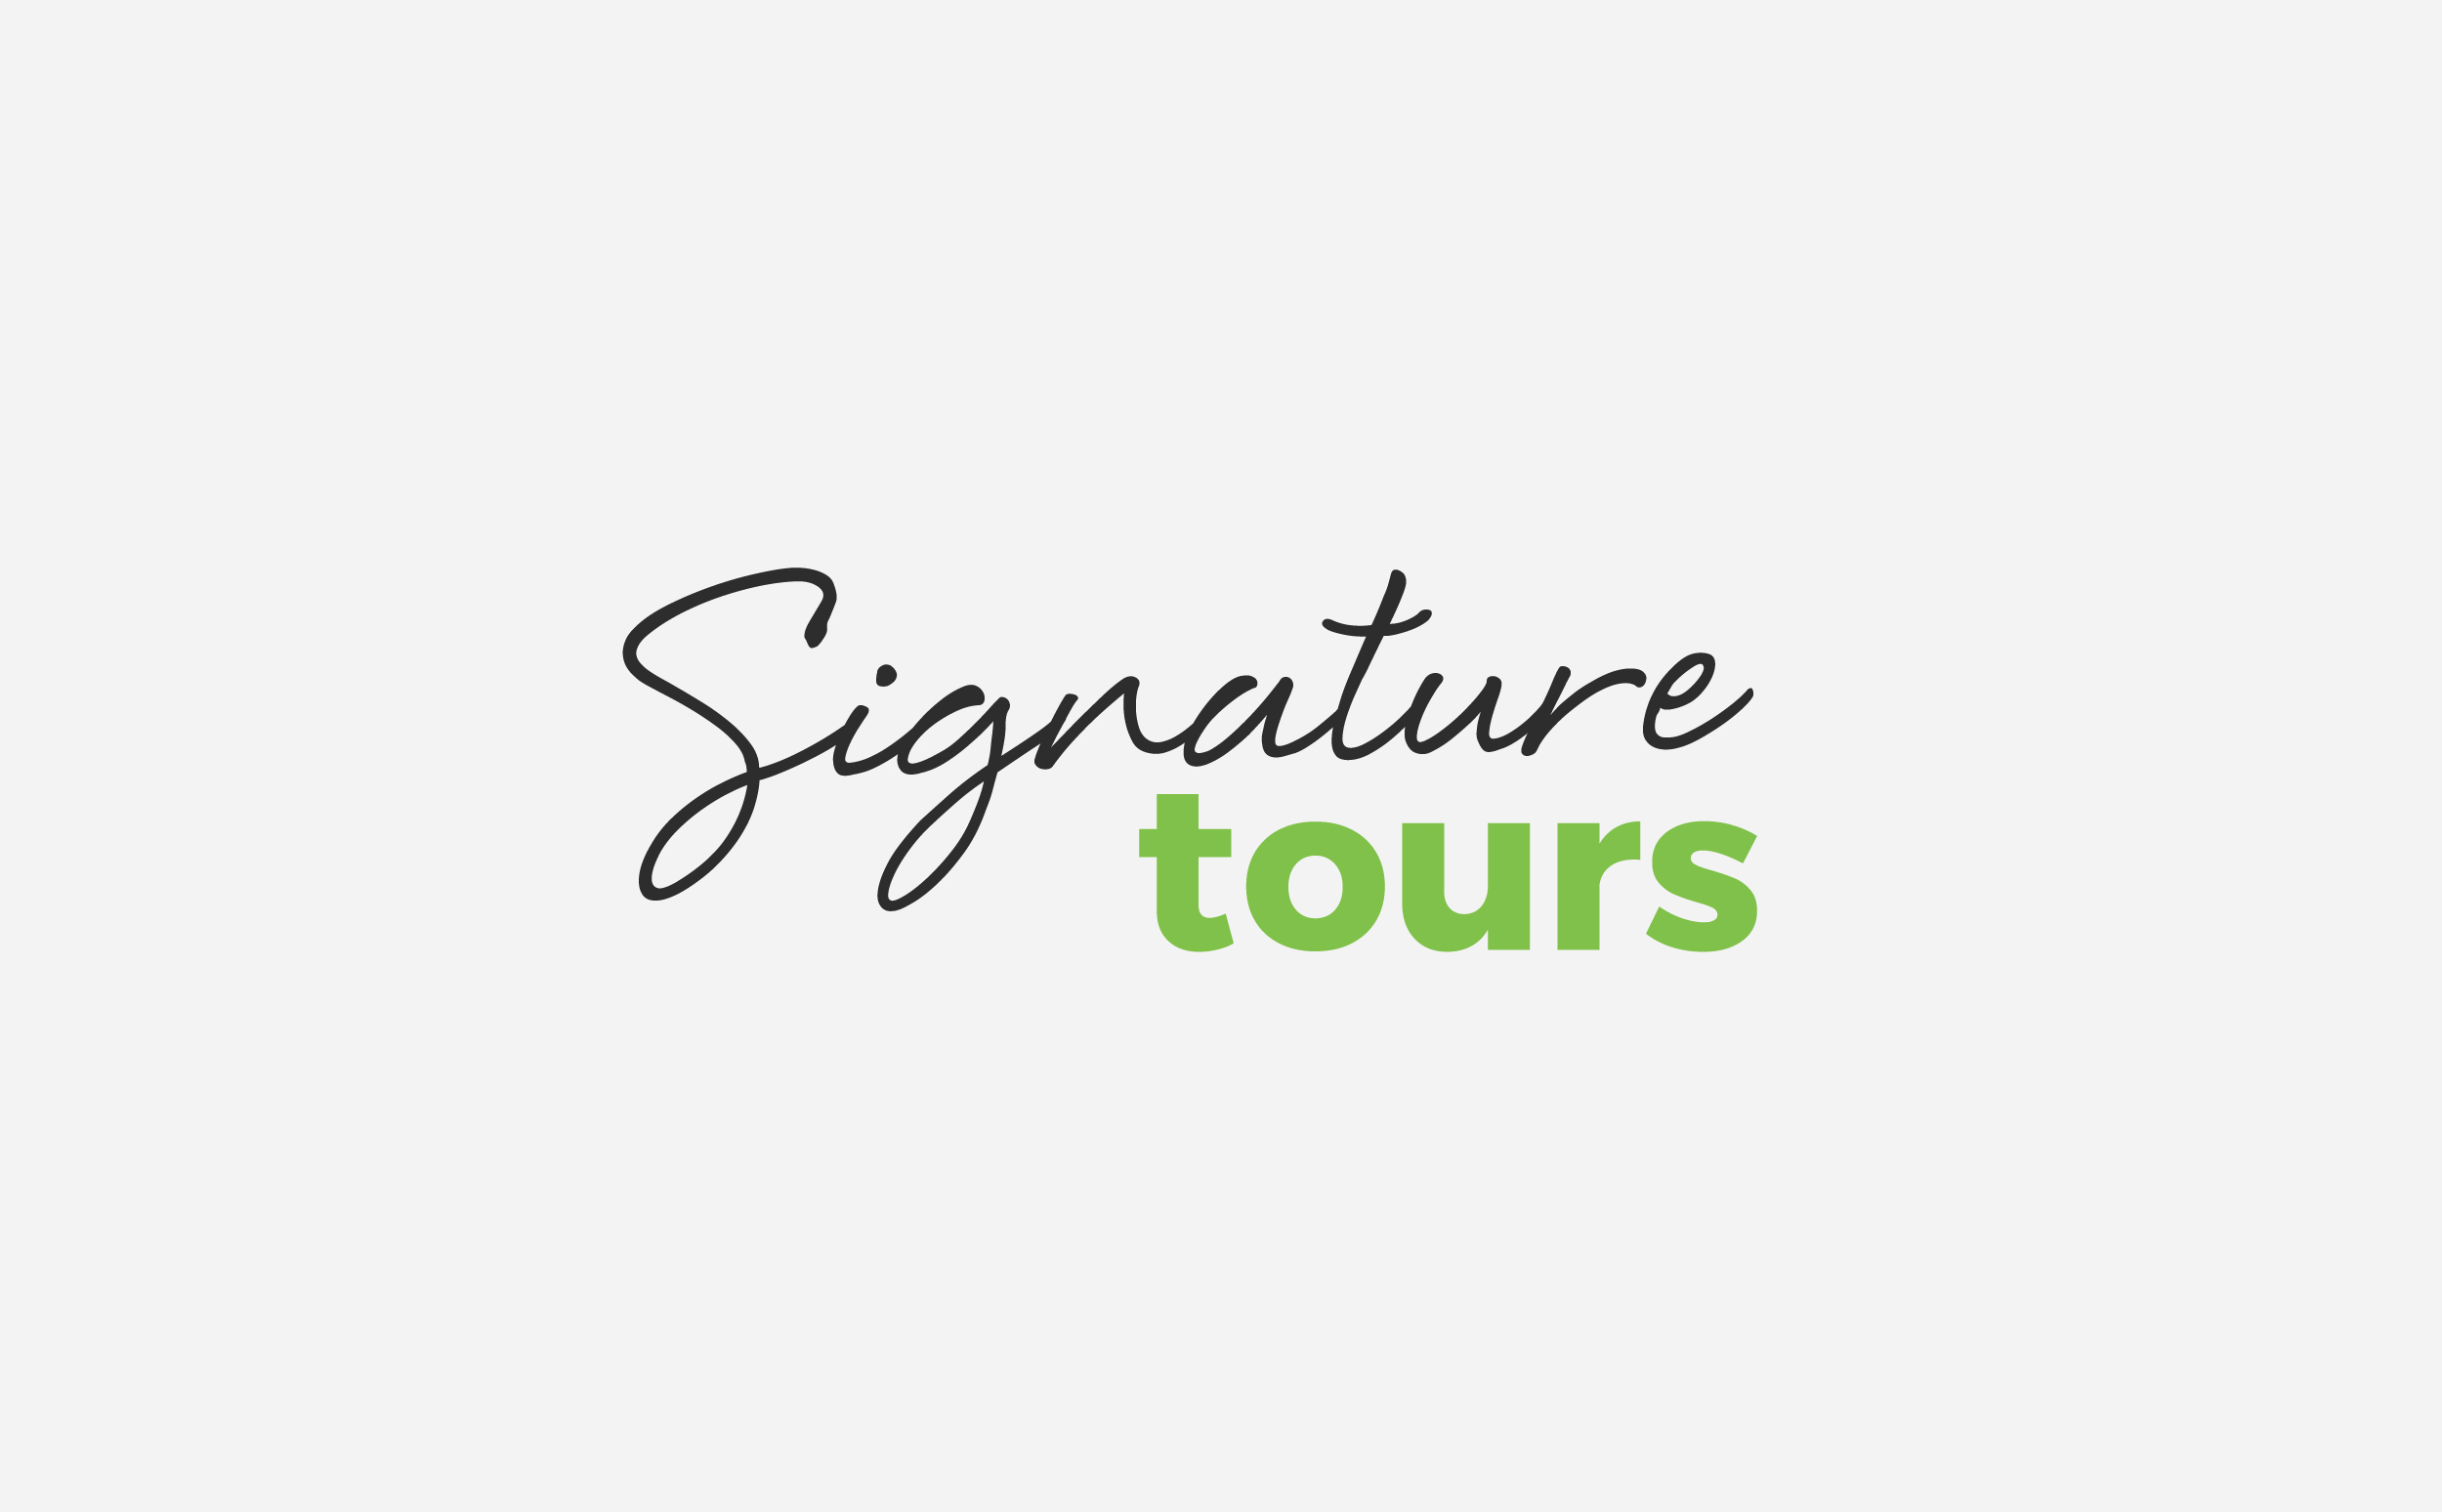 The_Great_Projects_Signature_Tours_Logo-01